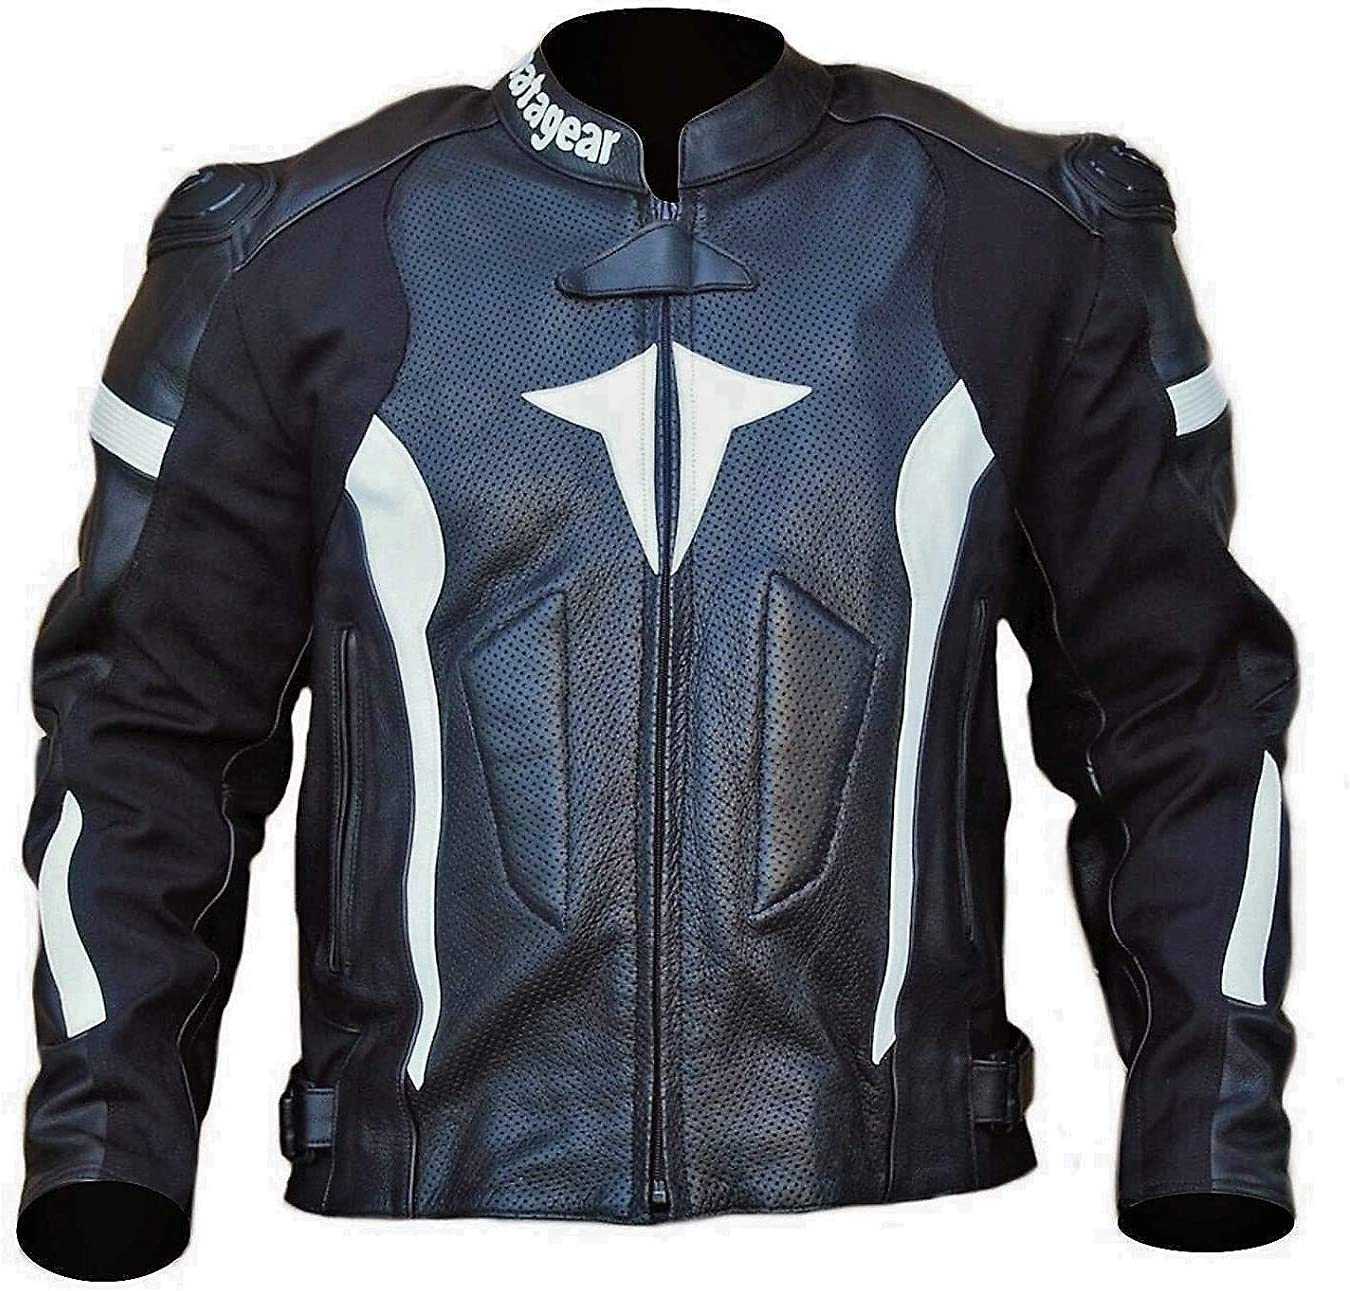 NEW BLACK MOTORCYCLE MATA BULWARK LEATHER JACKET CE APPROVED PROTECTION (SMALL)